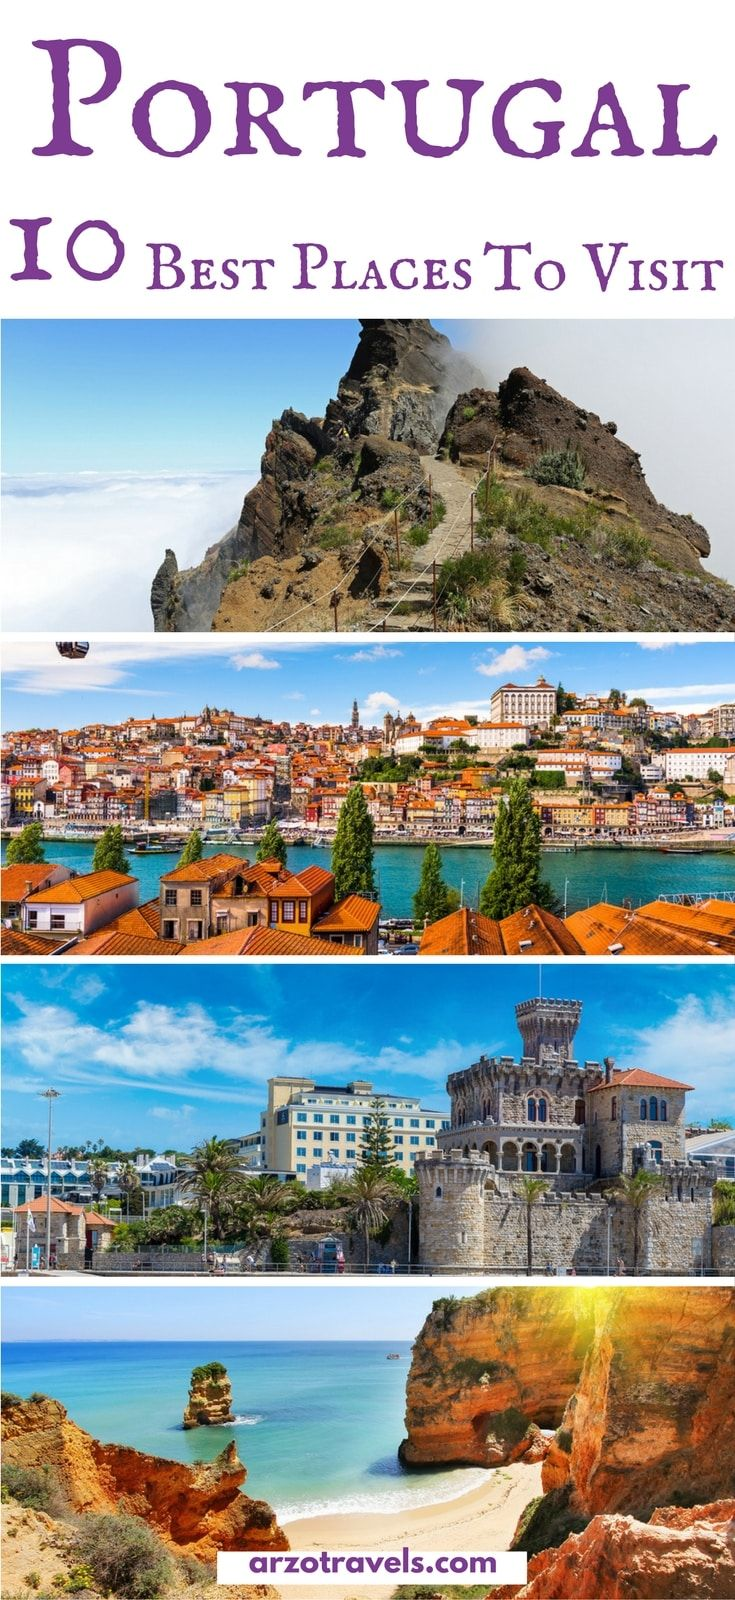 Best Places to Visit in Portugal #bestplacesinportugal